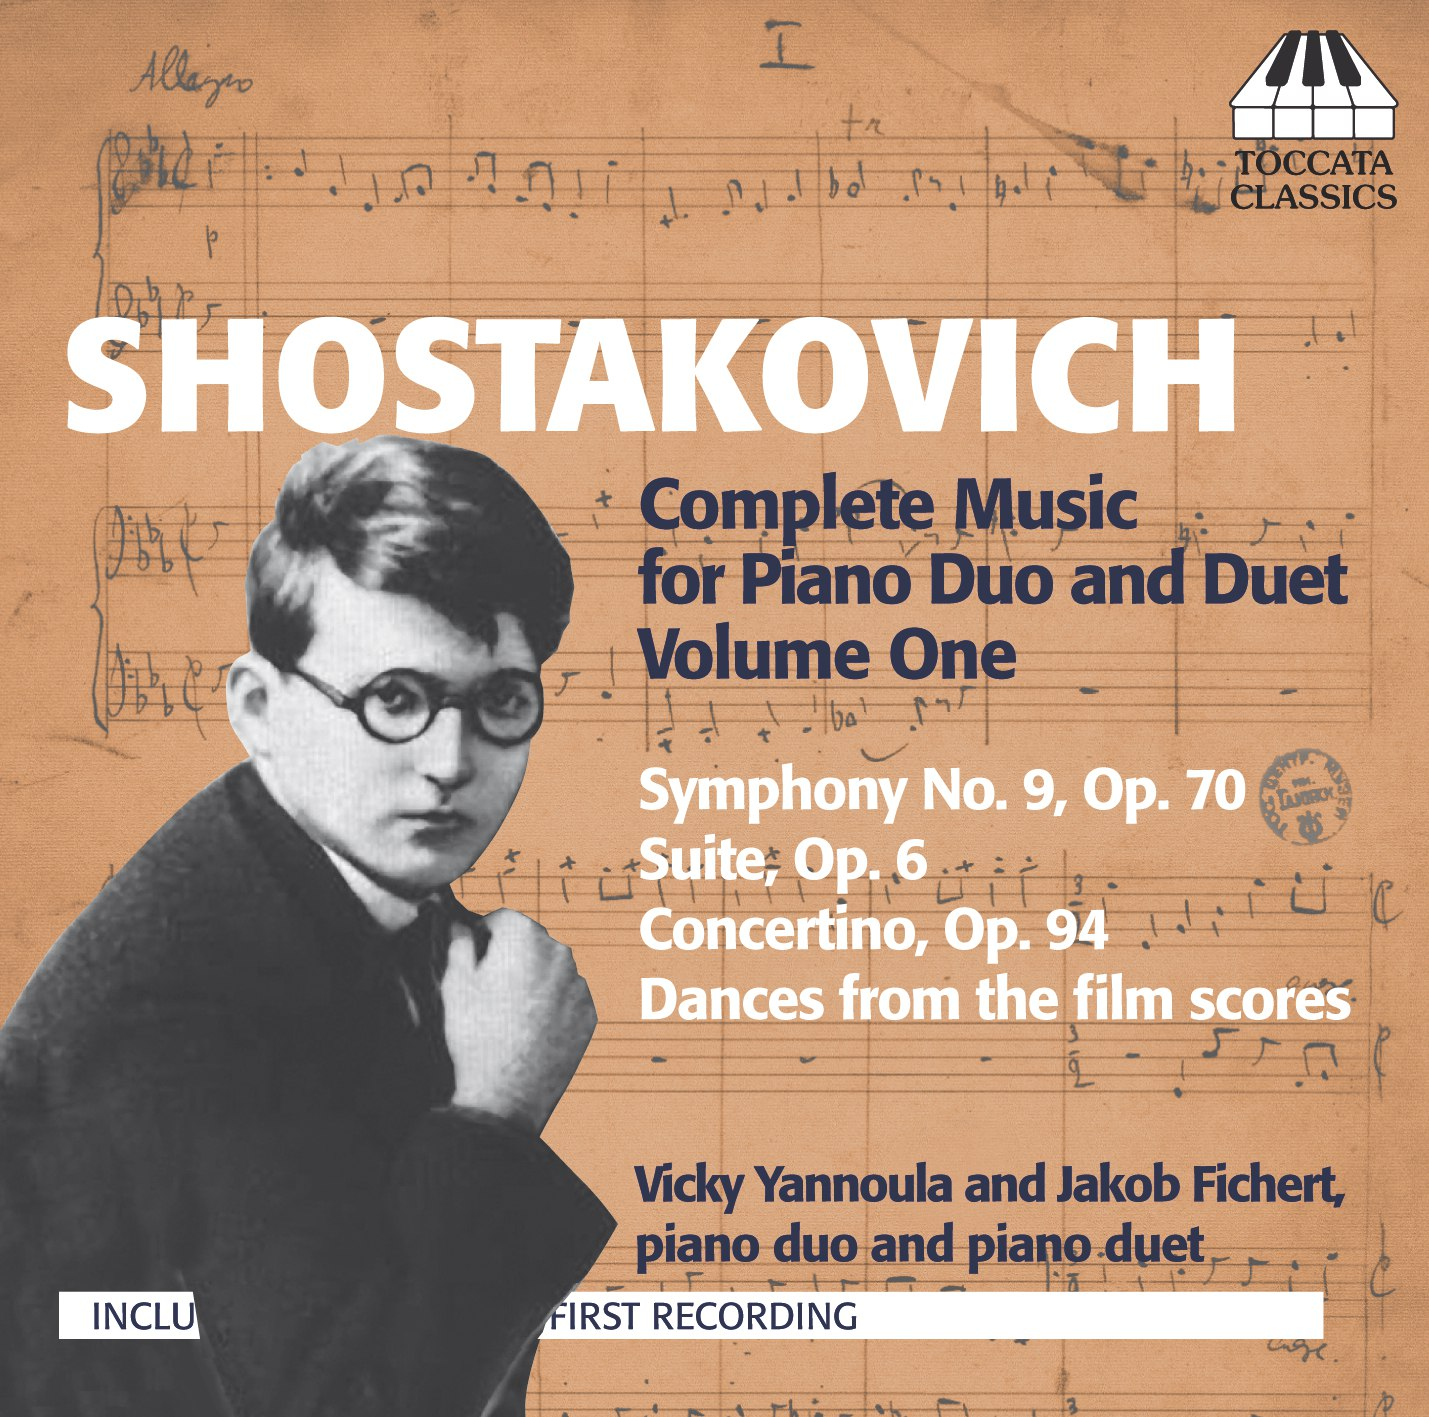 Shostakovich: Complete Music for Piano Duo and Duet